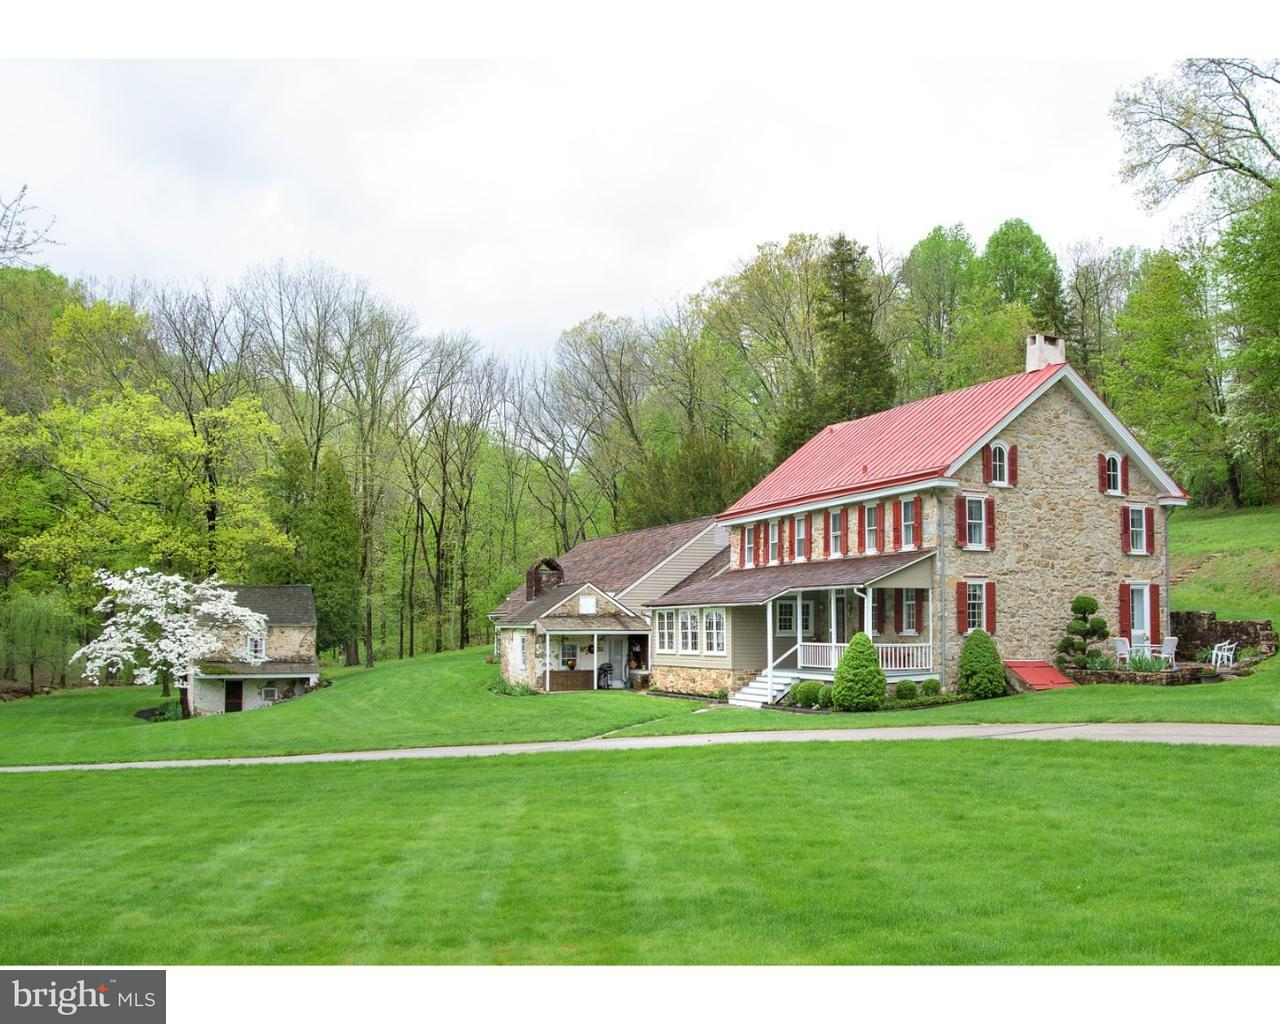 1881 ART SCHOOL RD, CHESTER SPRINGS - Listed at $1,150,000, CHESTER SPRINGS